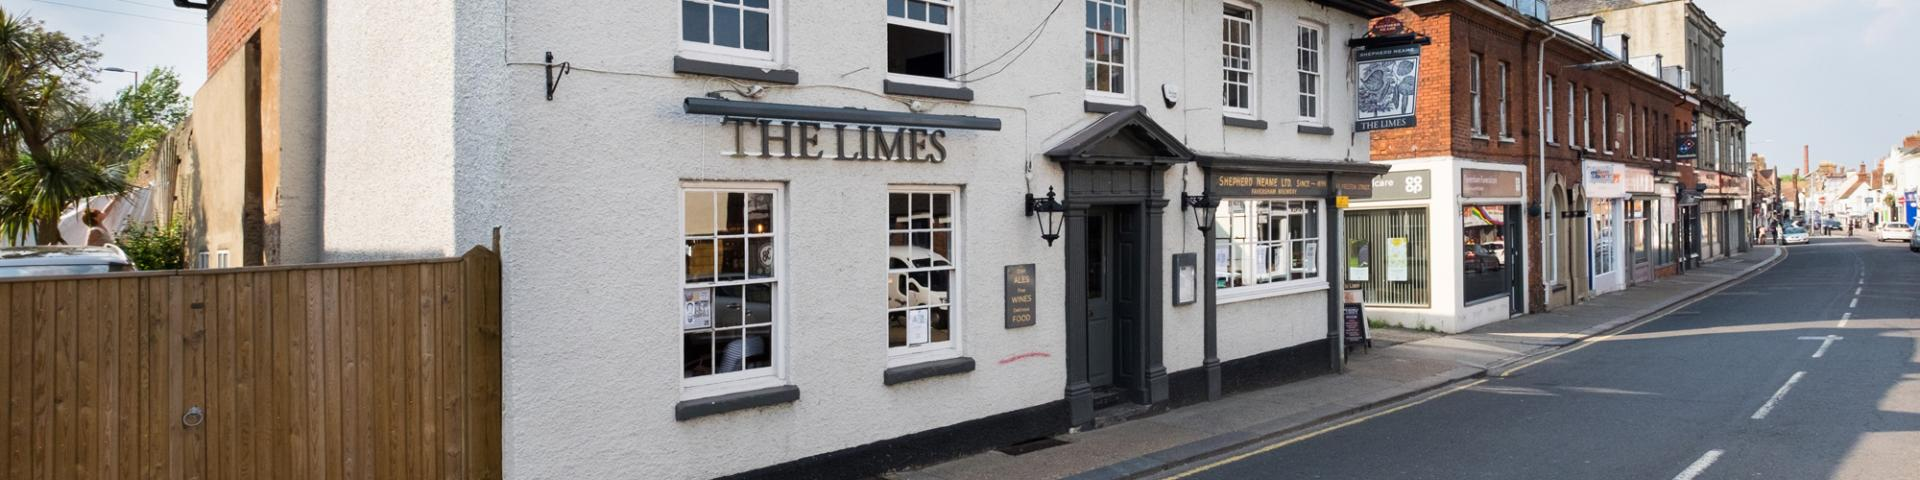 The Limes, Faversham